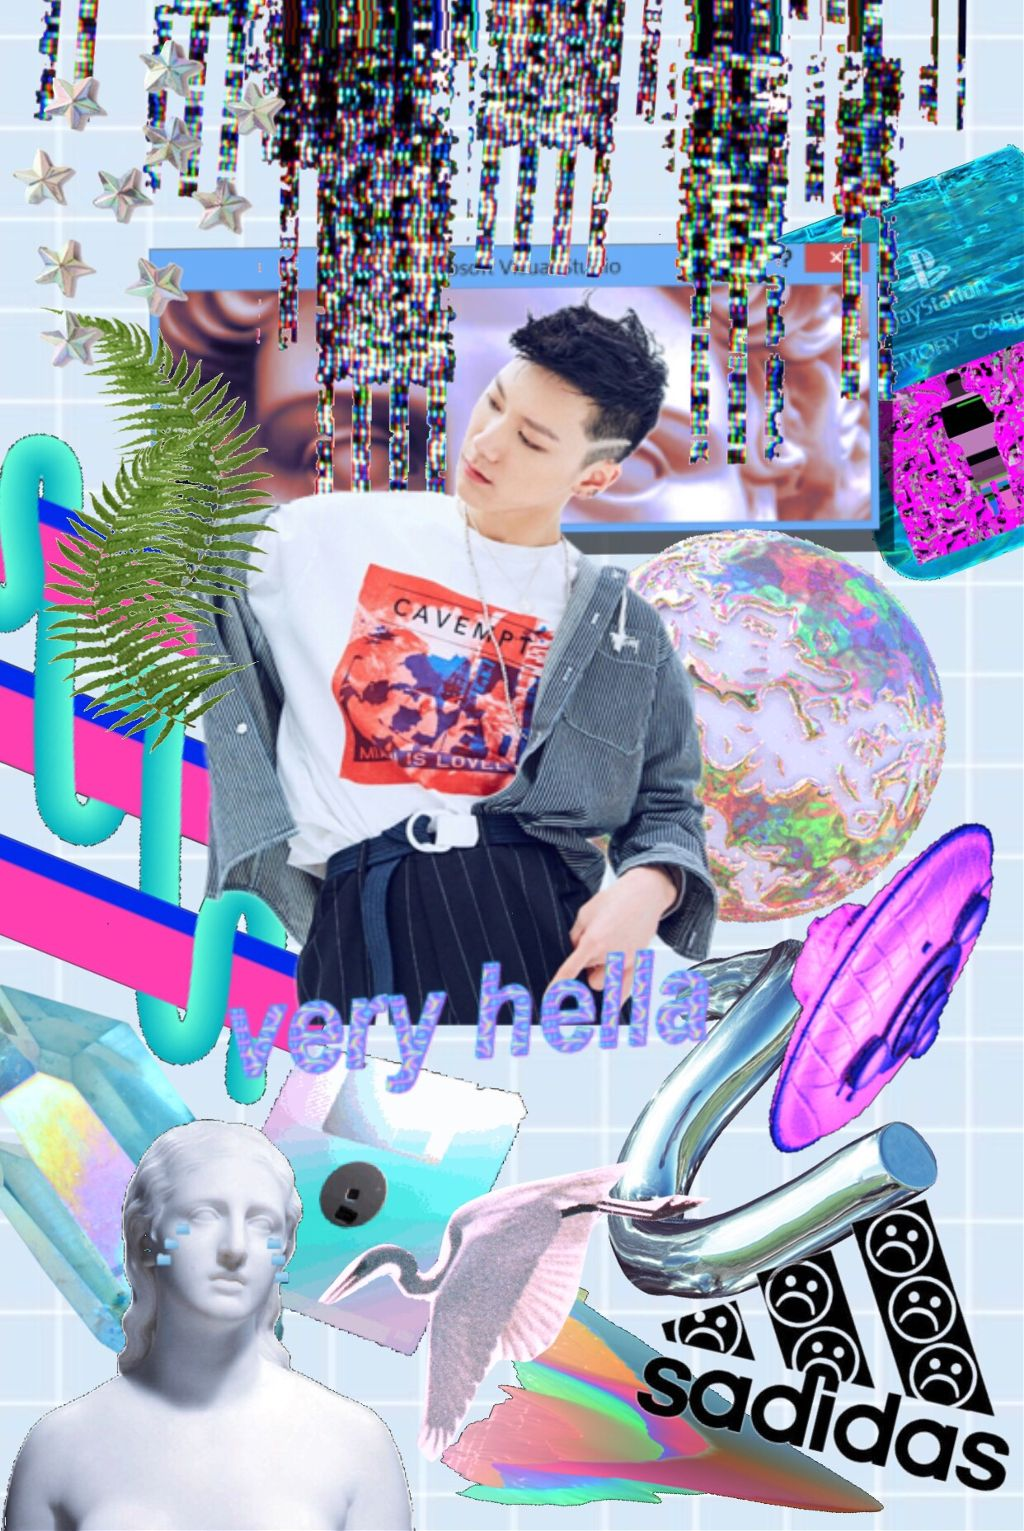 Nct Ten edit i haven't posted in a while, (almost a year ??) because i've been so caught up in life's events. i hope this vaporwave-type edit of ten makes up for it :) will be editing and posting more often now